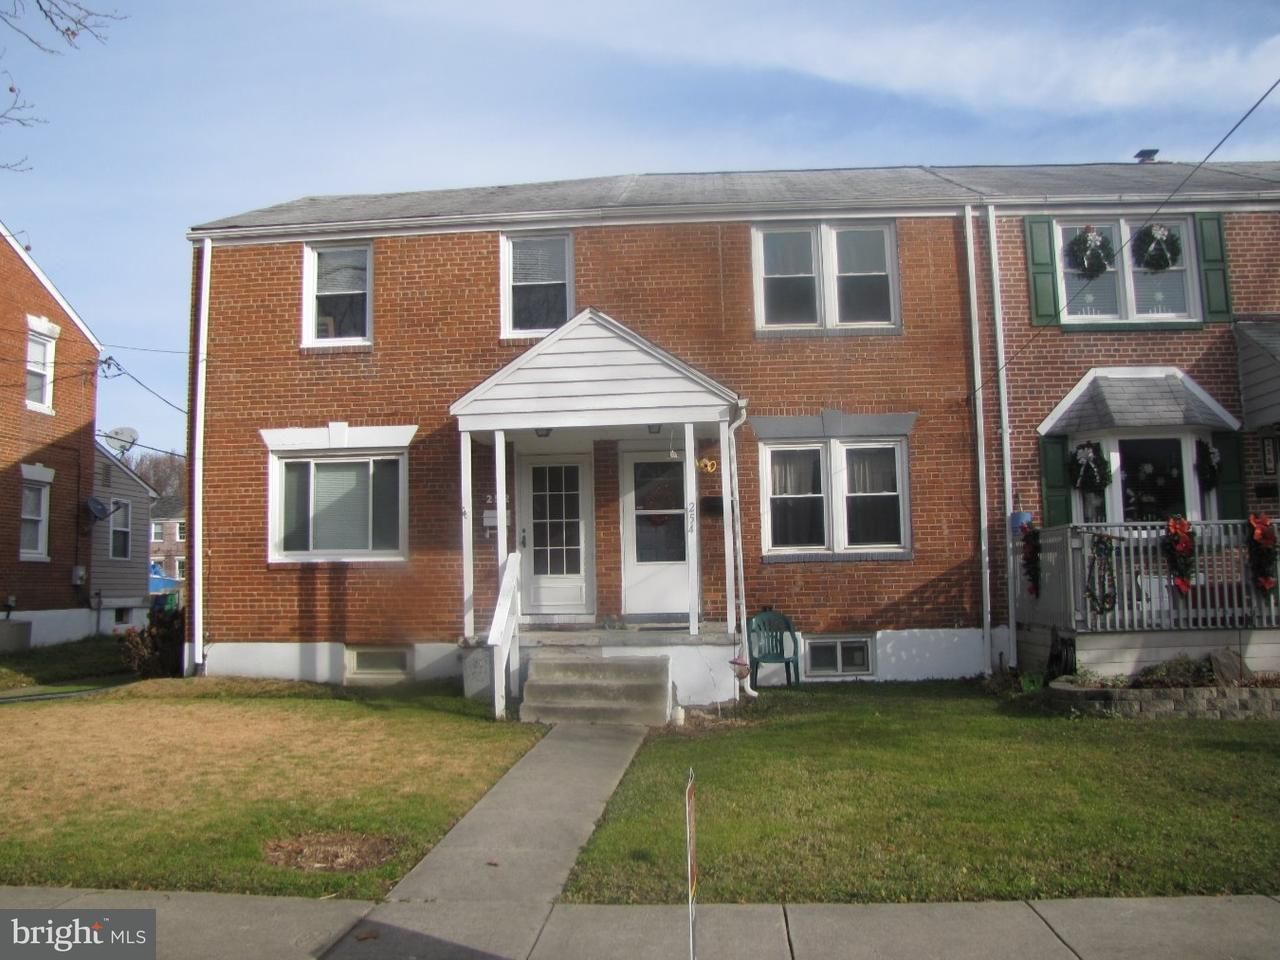 Townhouse for Sale at 254 BIRCH Avenue Elsmere, Delaware 19805 United States